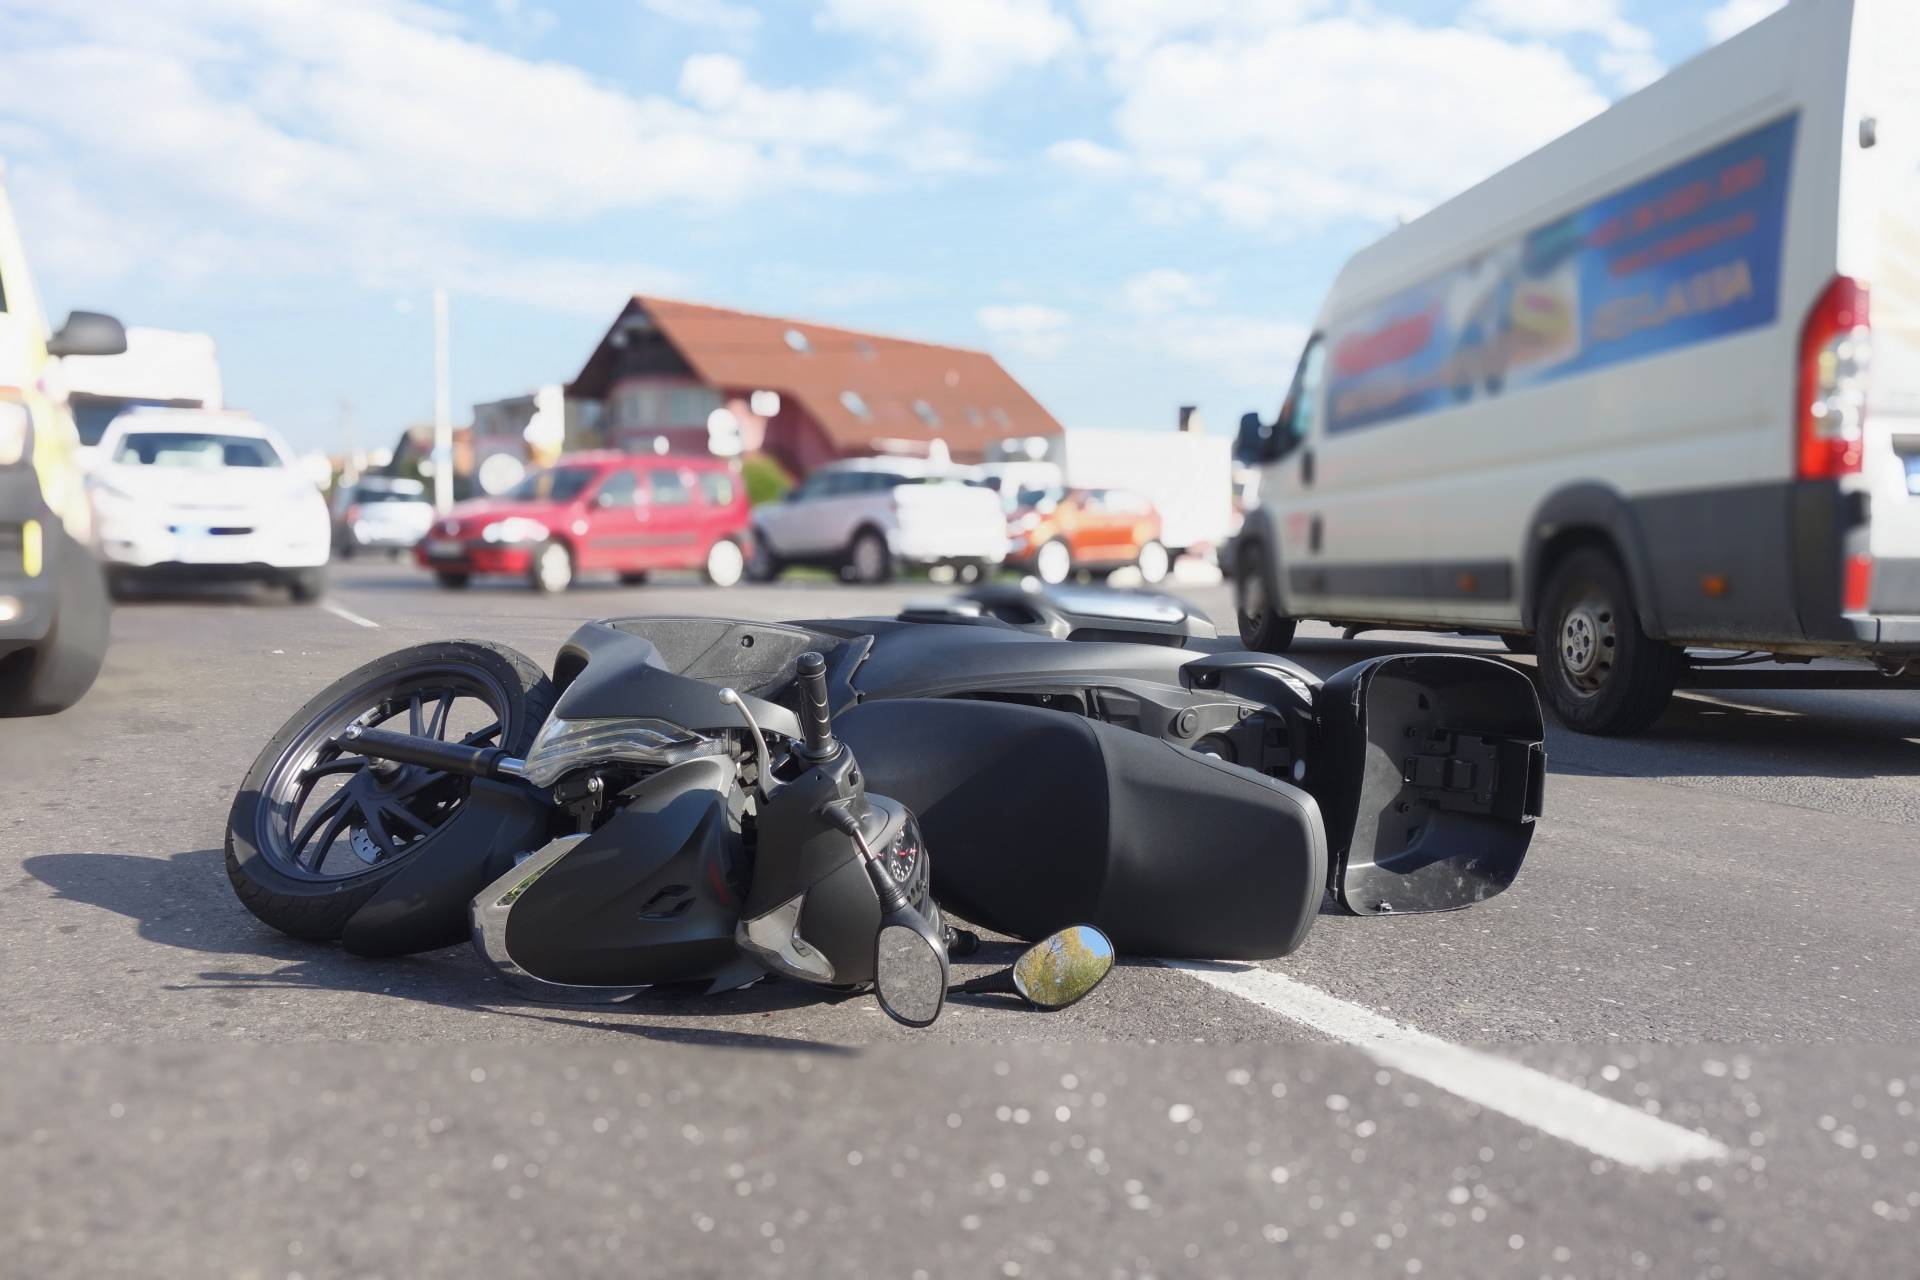 A helmet will help keep you safe and strengthen your motorcycle accident injury claim.